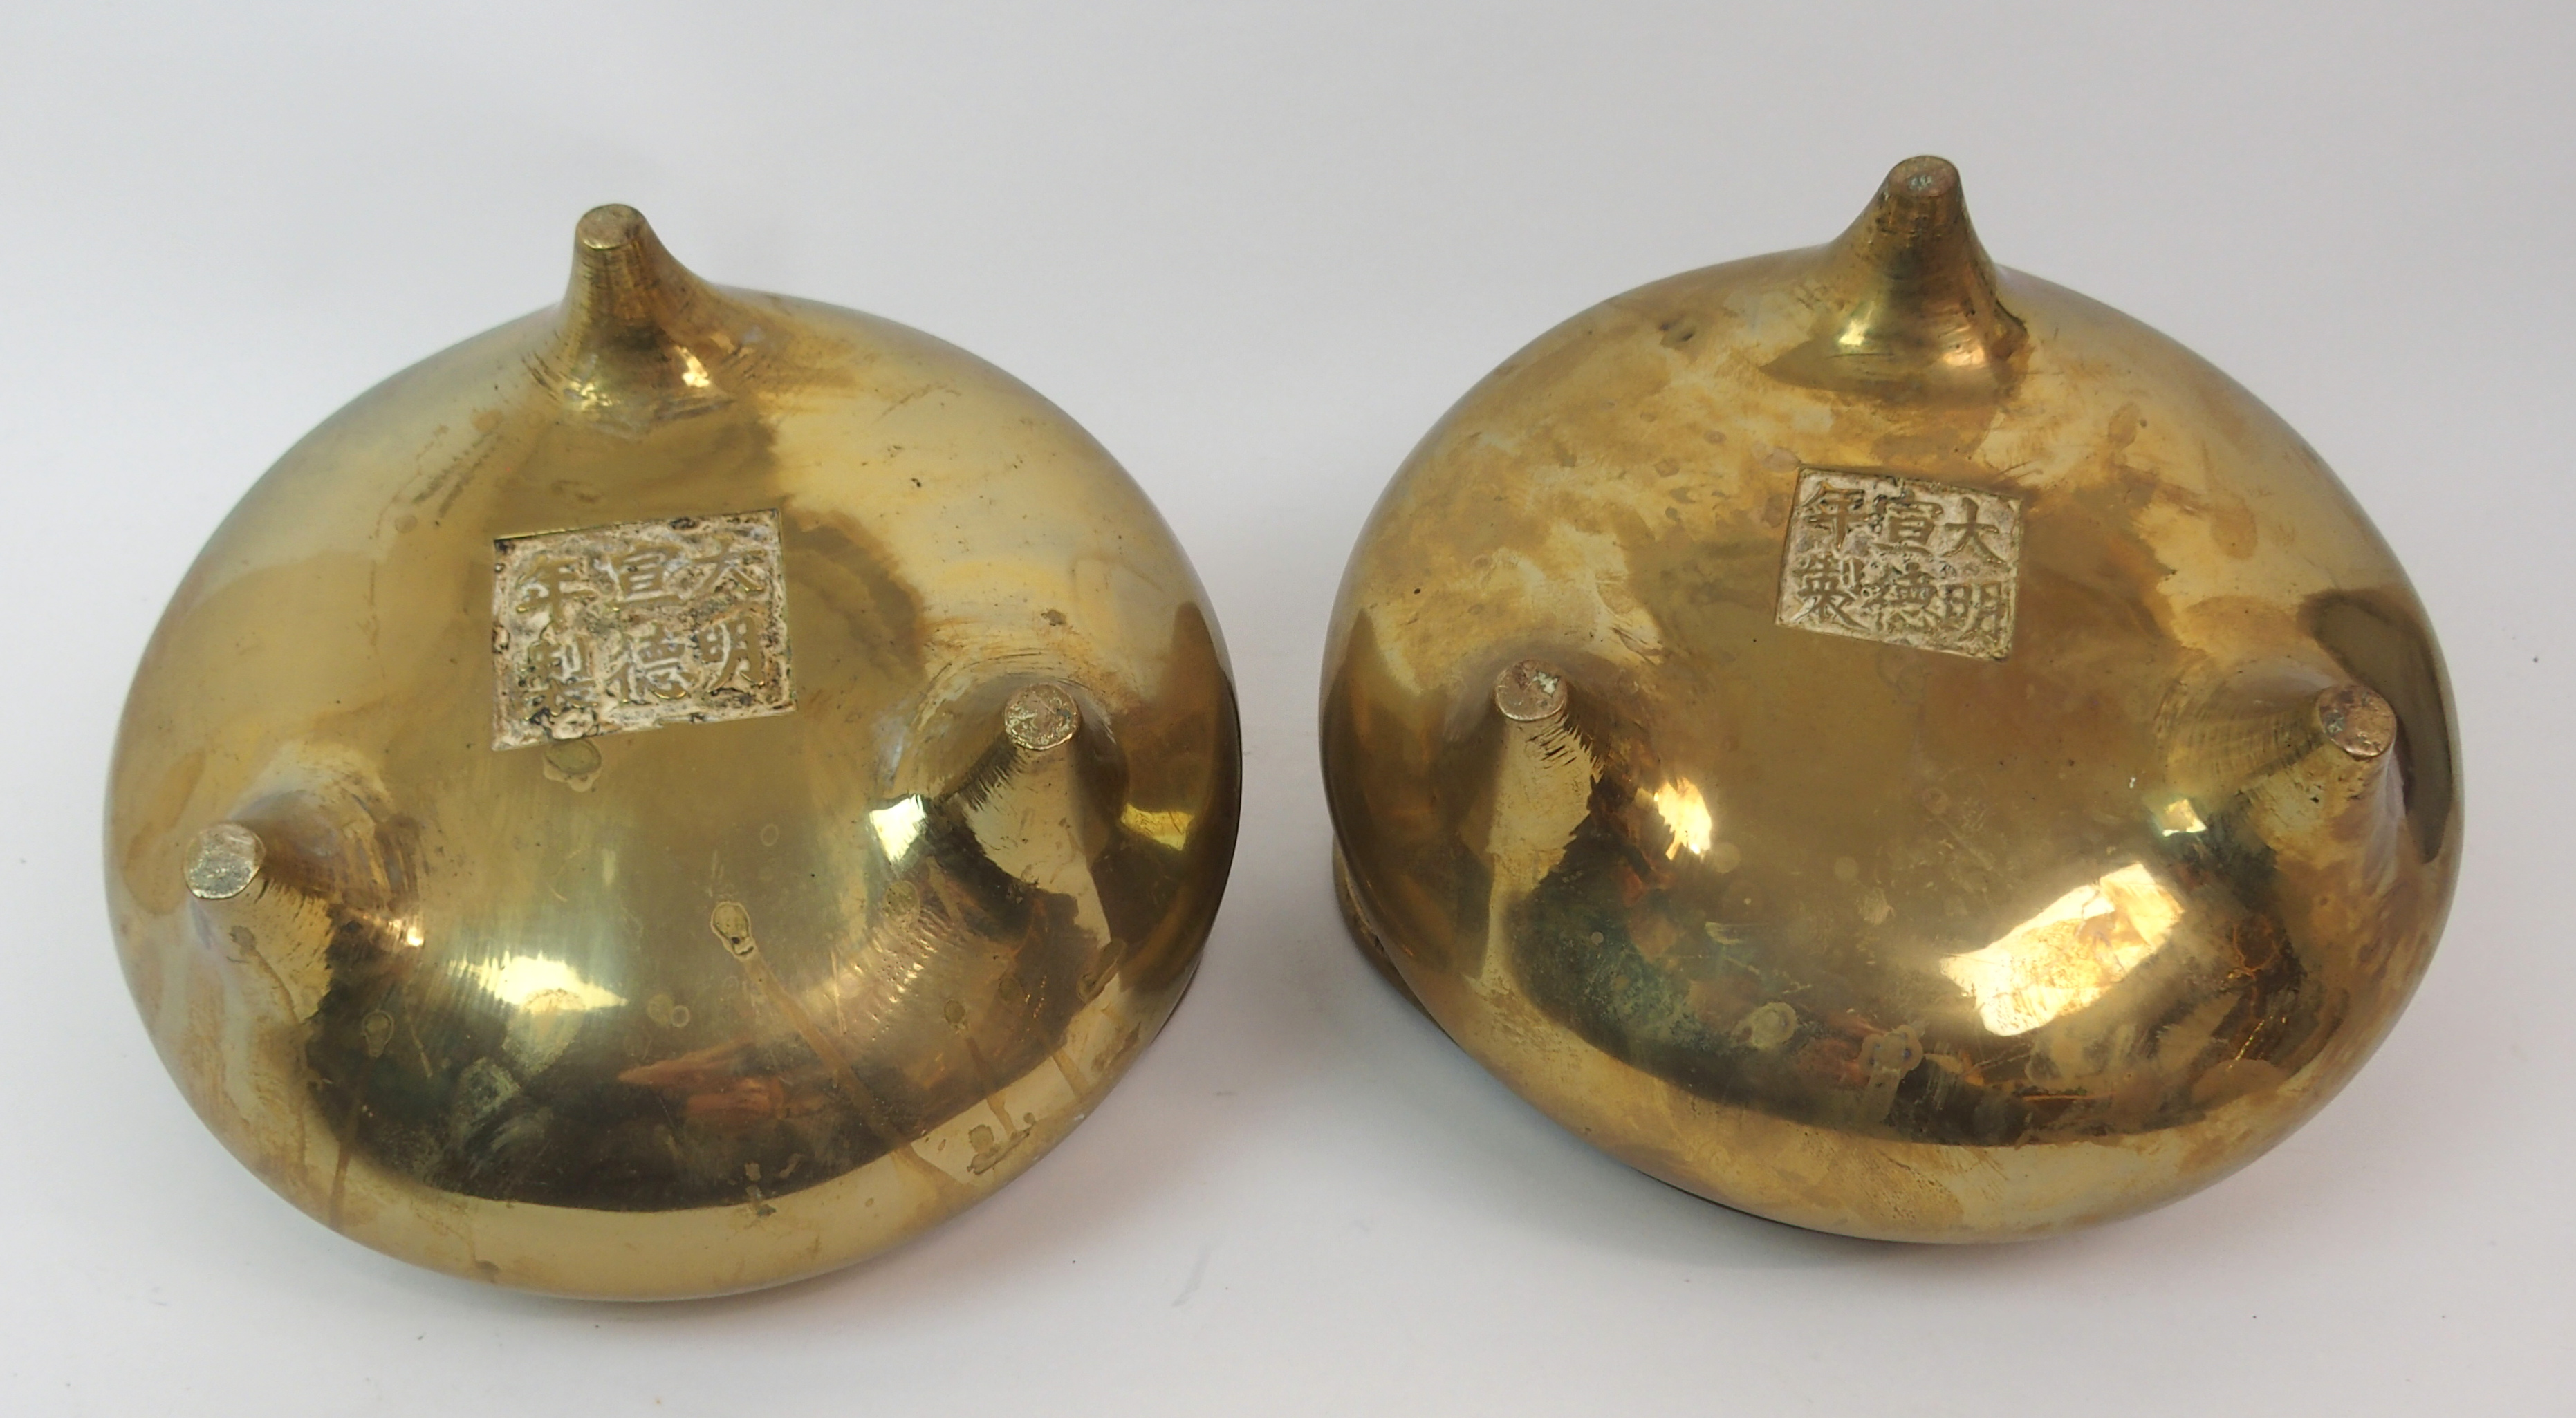 Lot 58 - A CHINESE BRASS TWO-HANDLED CENSER on tripod base, cast six character mark, 15cm high x 23cm